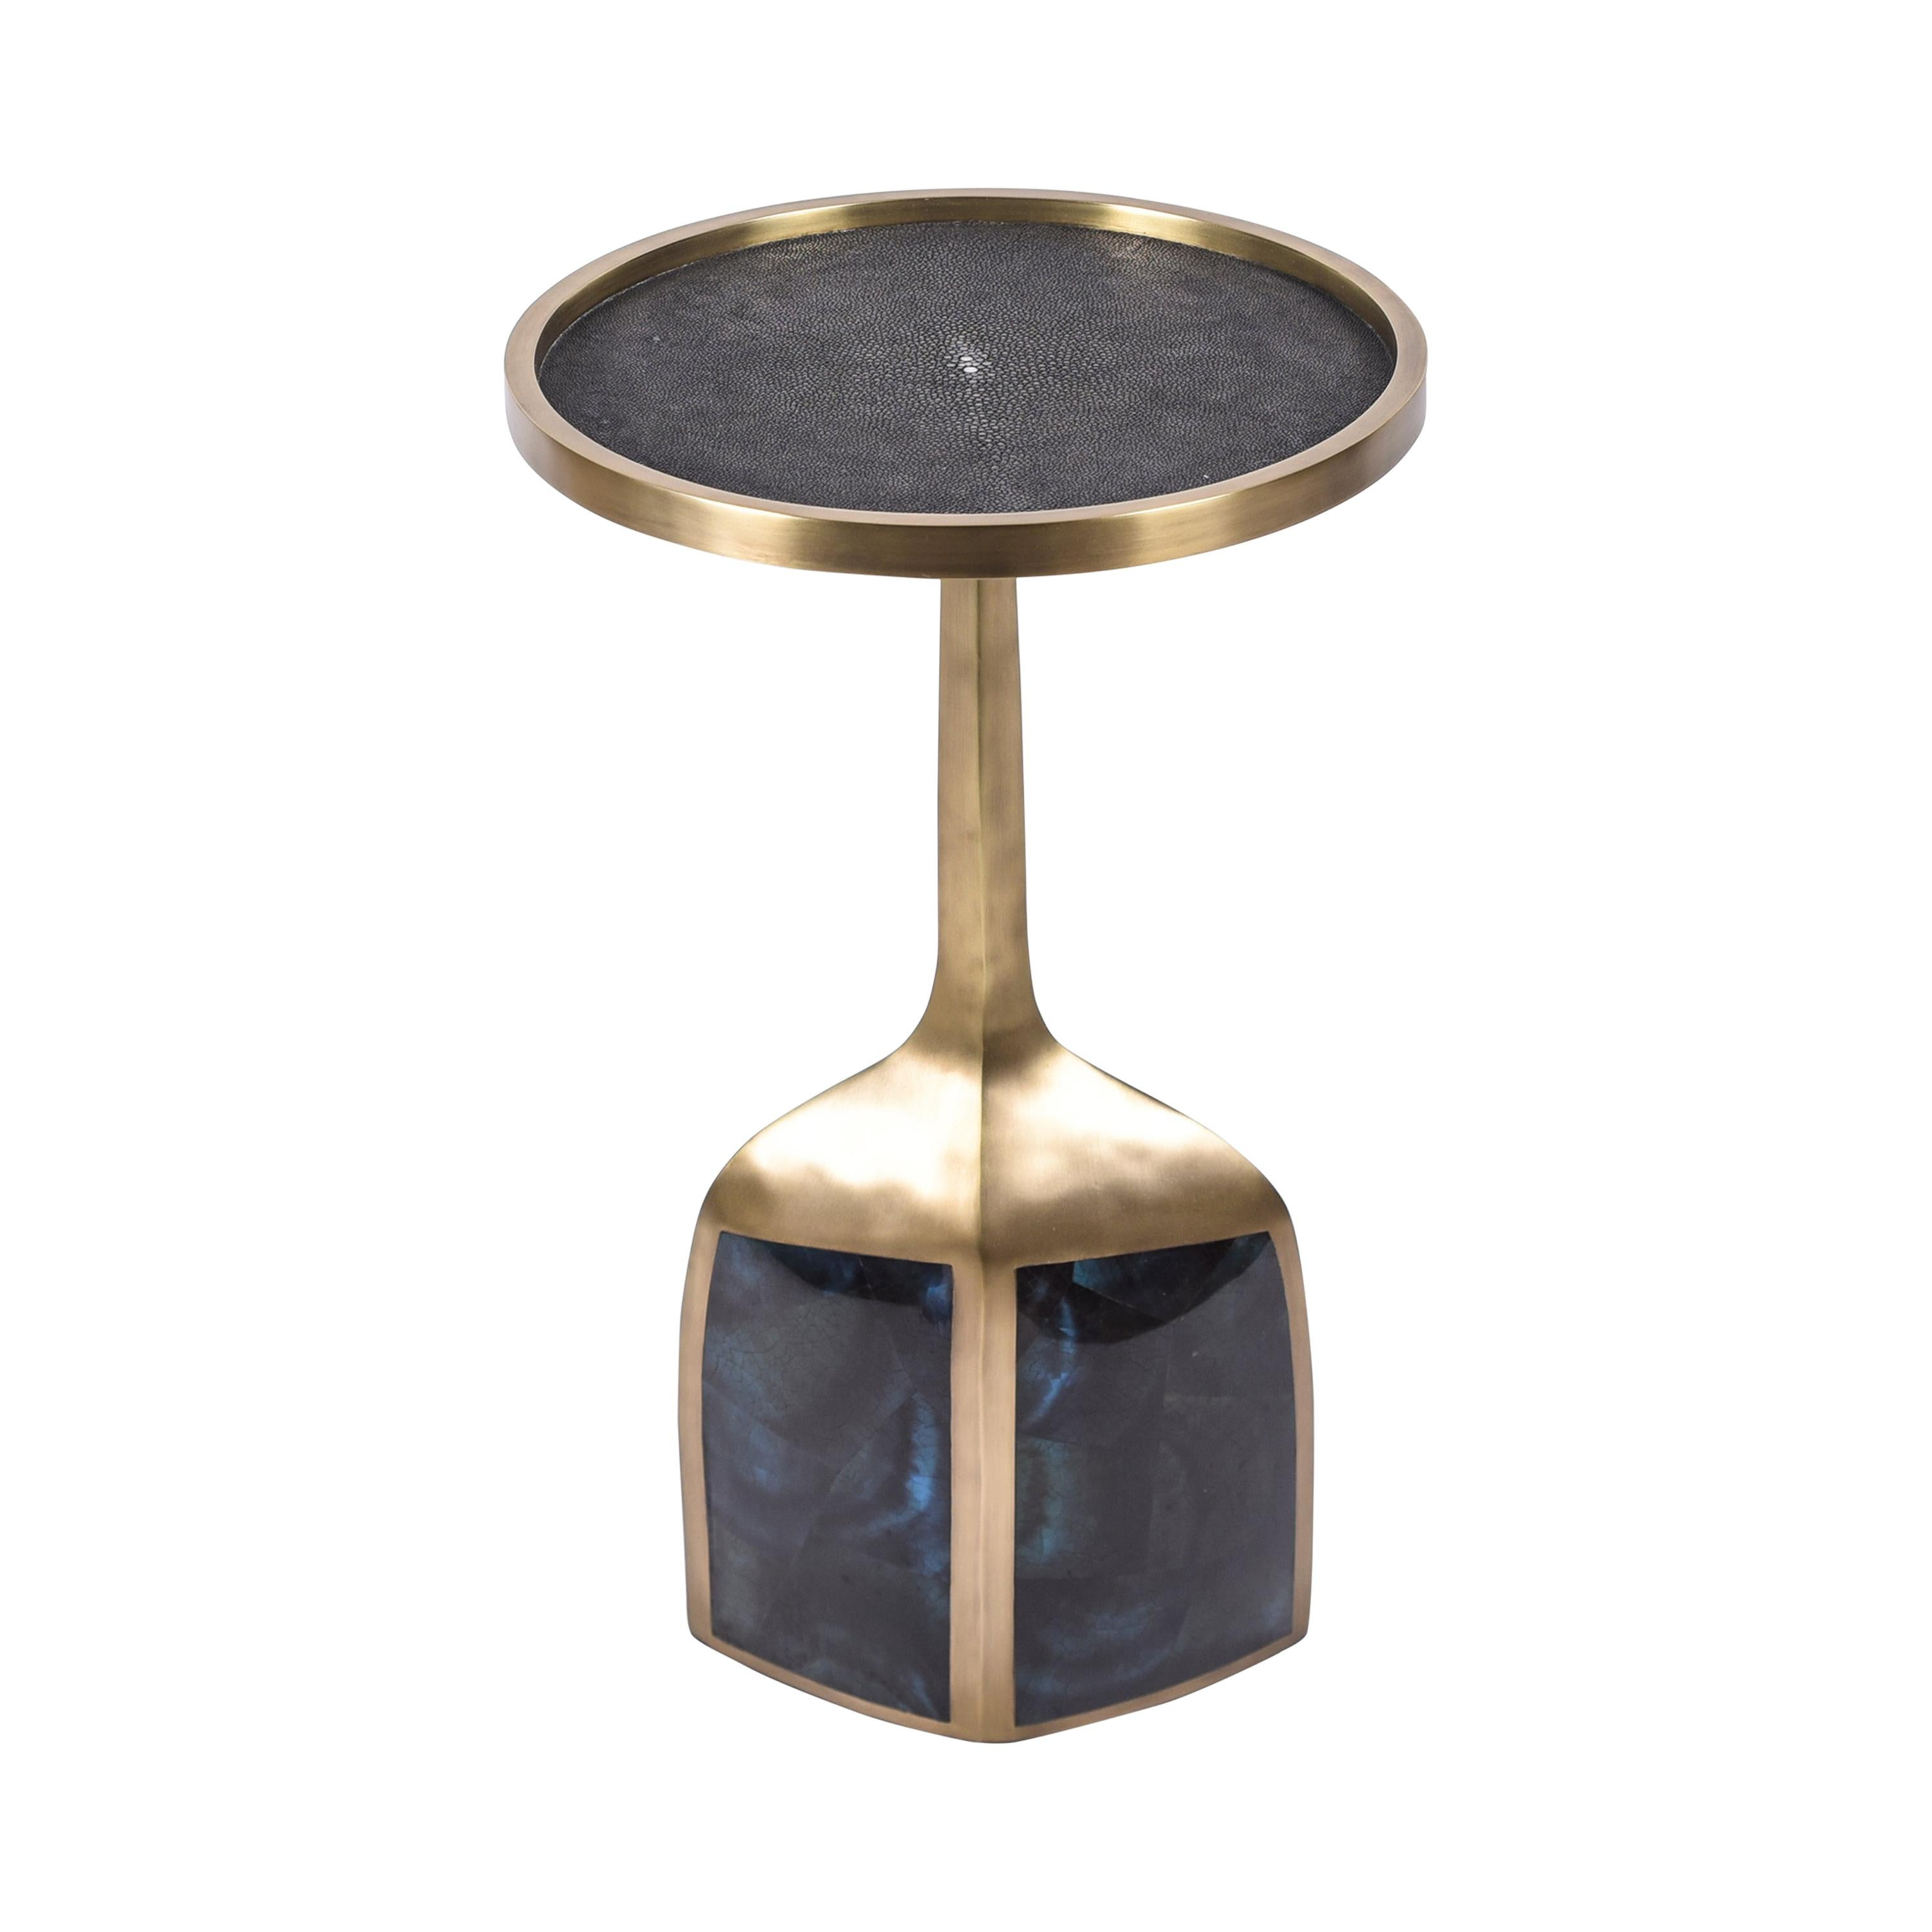 Pedestal Table Large in Black Shagreen, Blue Pen Shell and Brass by R&Y Augousti